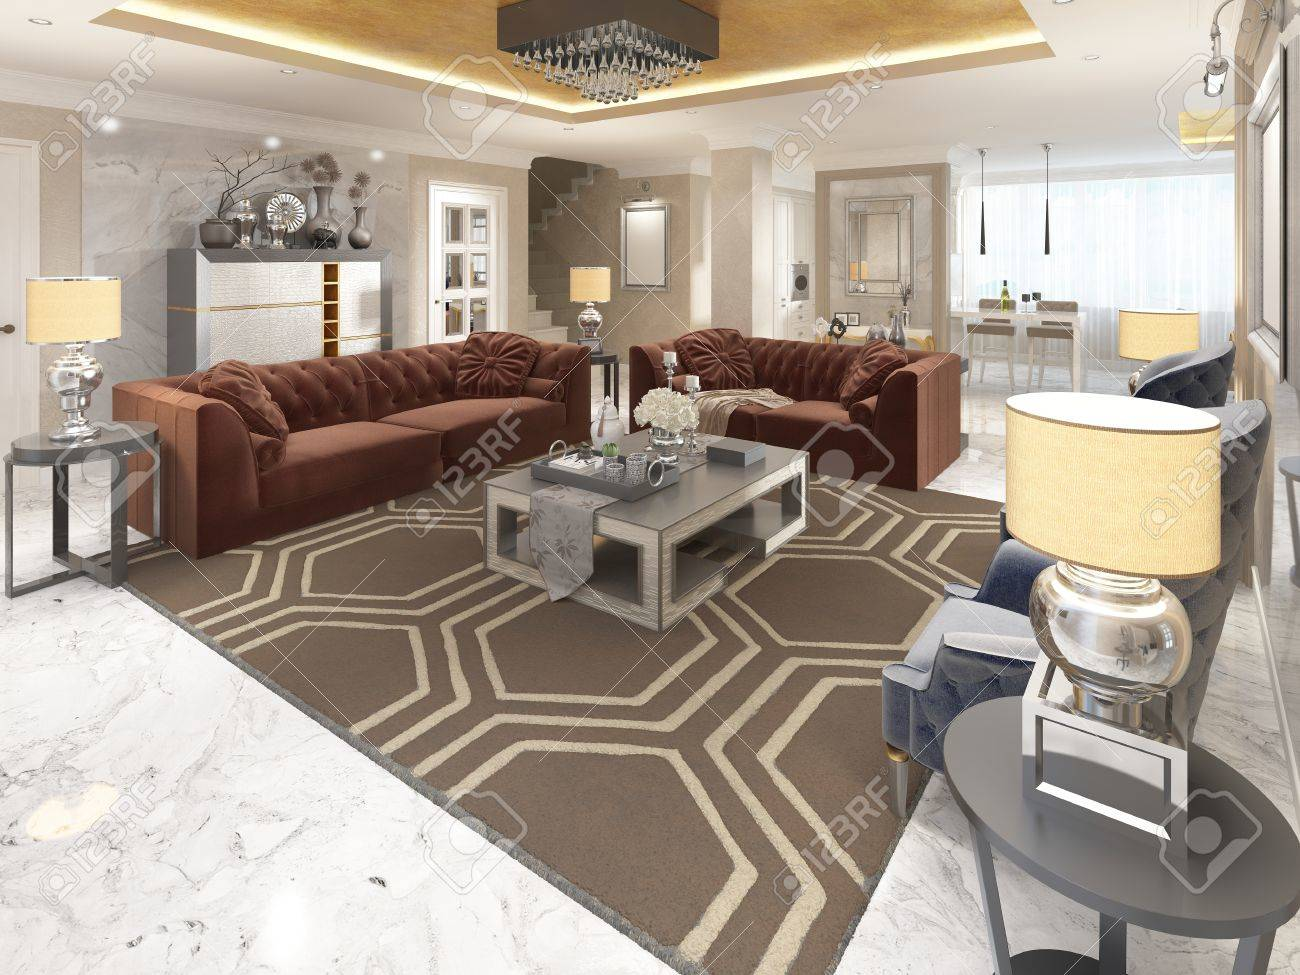 Luxury designer apartment studio in art deco style living area blending smoothly into the